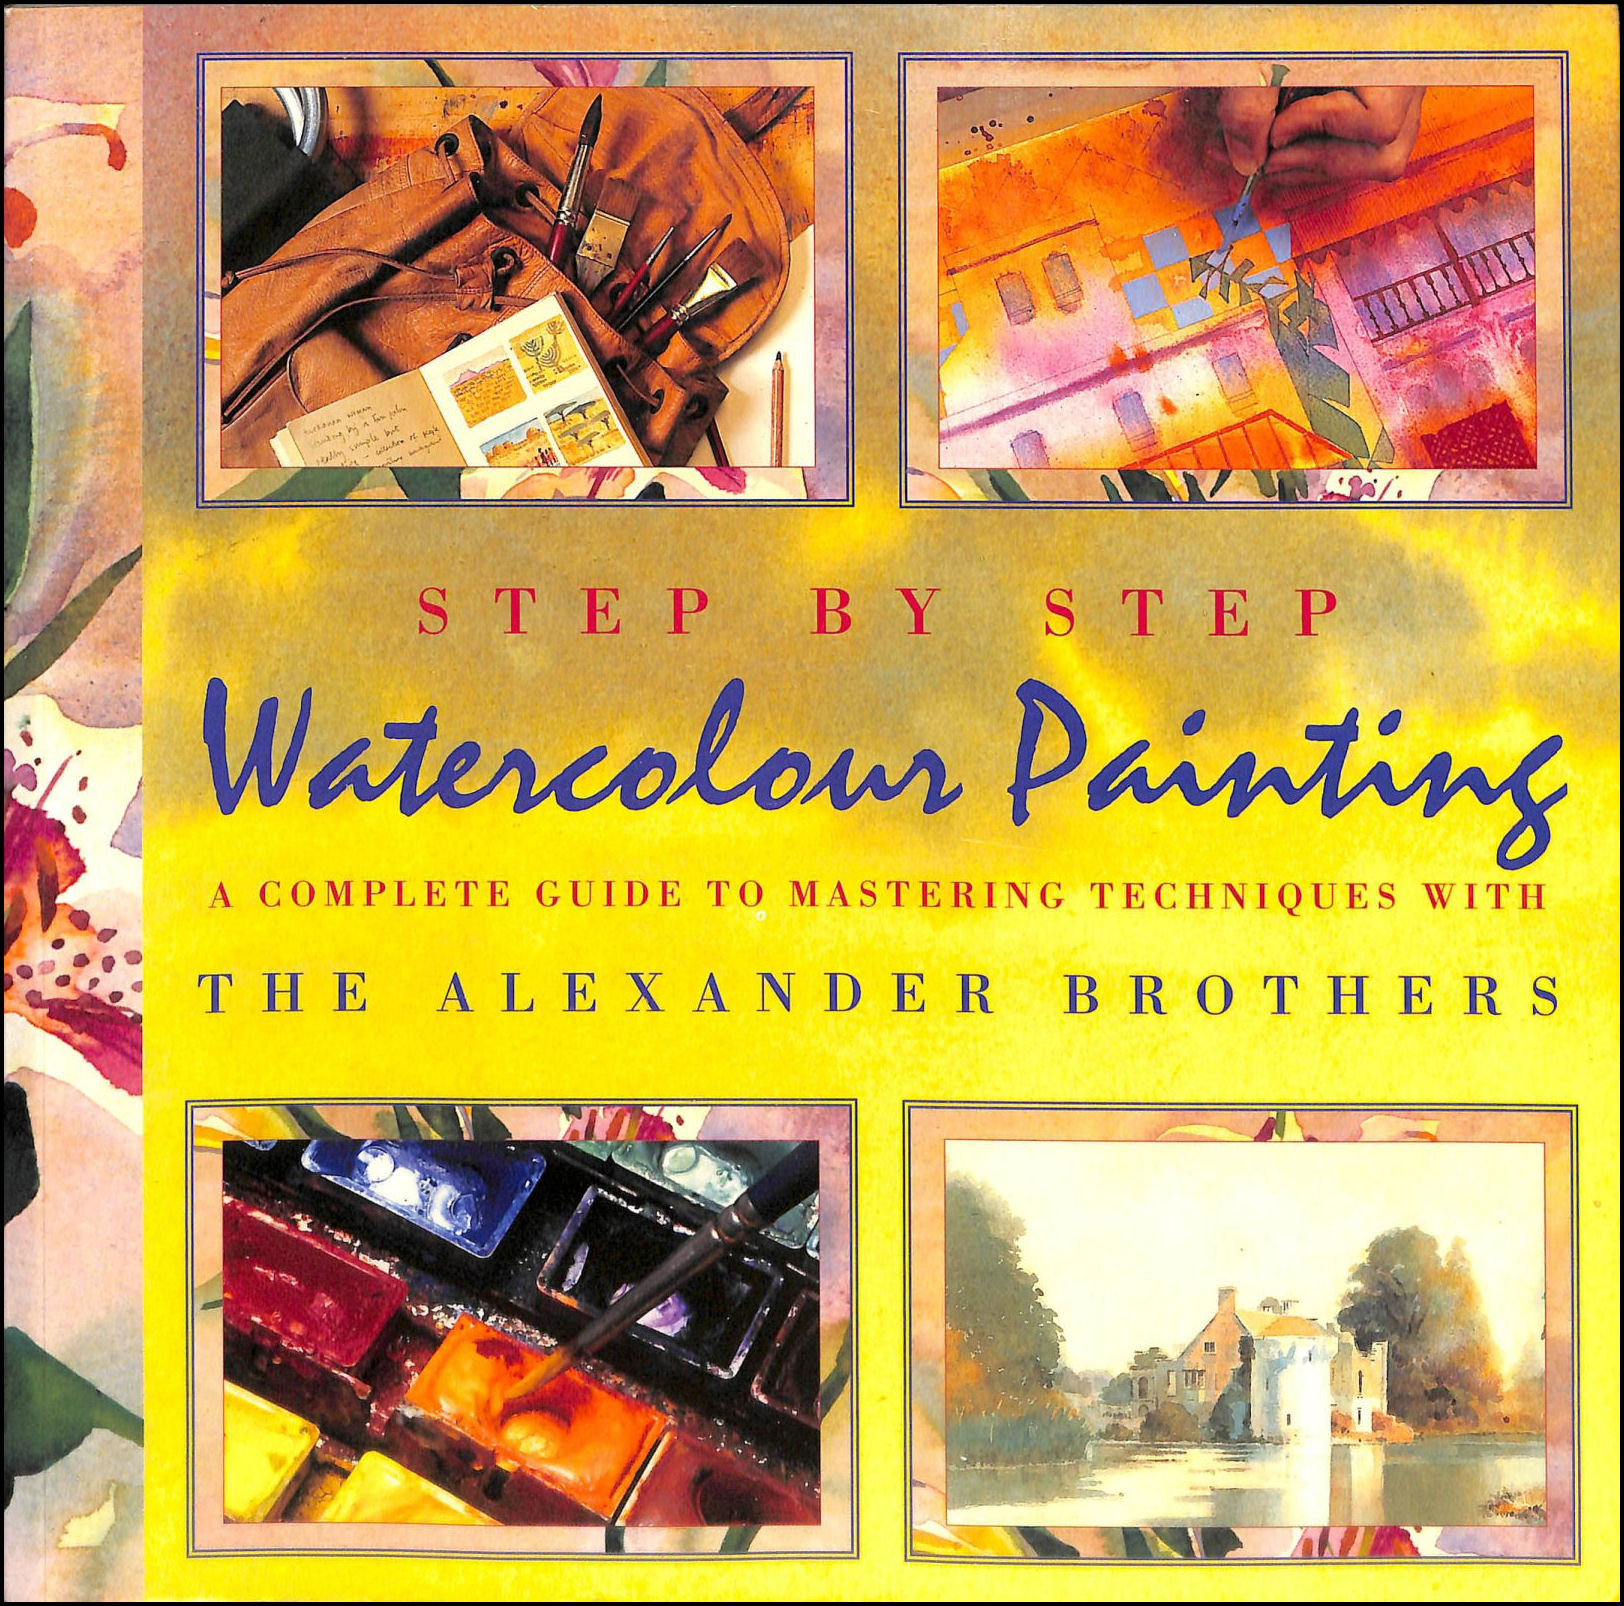 Image for Step By Step Watercolour Painting: A Complete Guide to Mastering Techniques with the Alexander Brothers